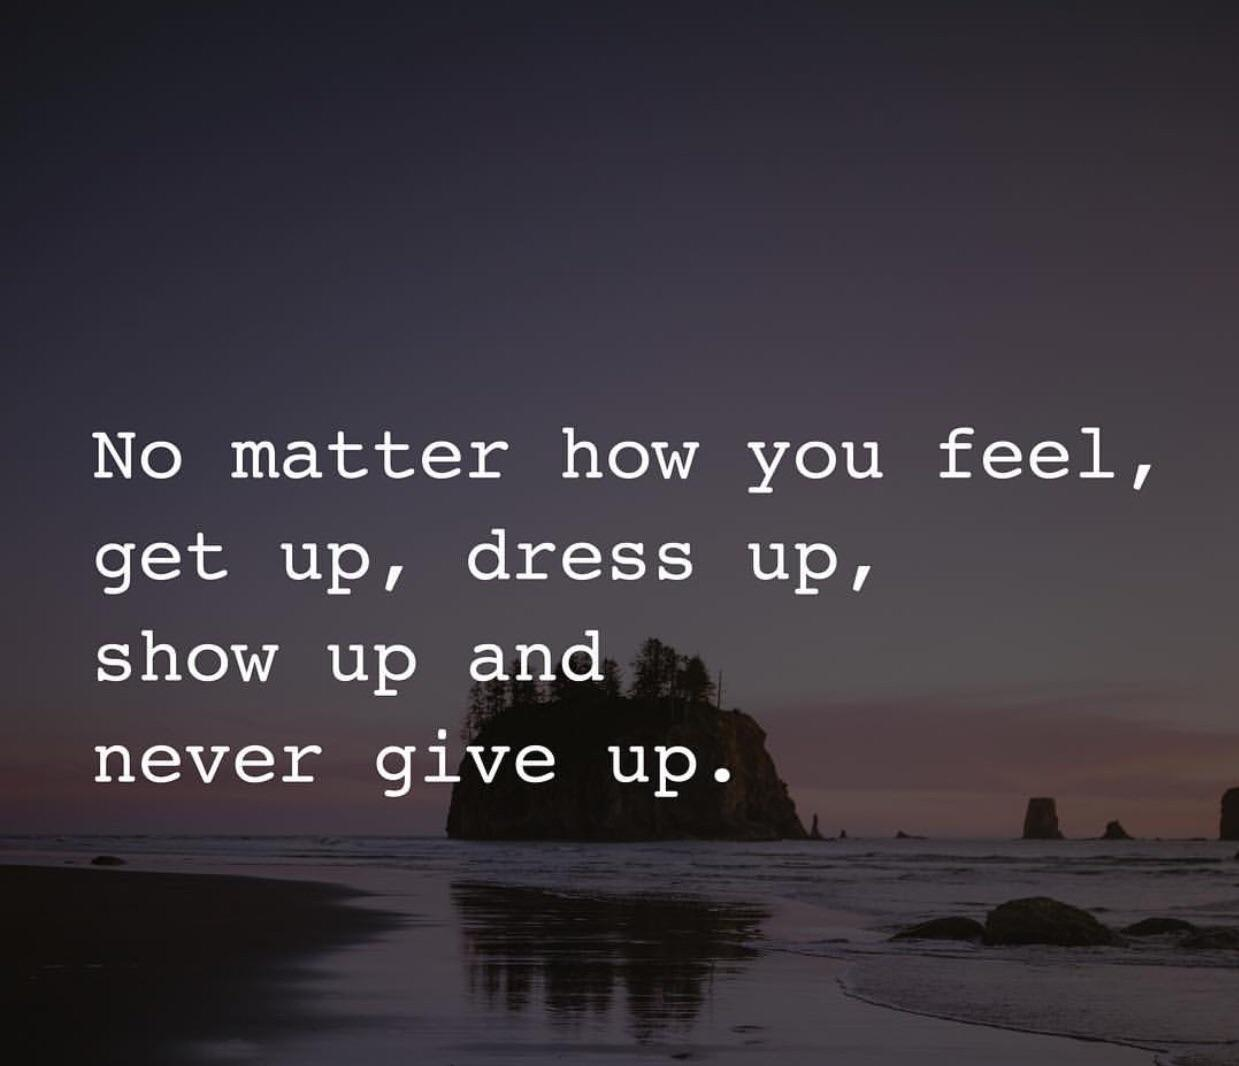 [image] fight your useless feelings and strive for the best.